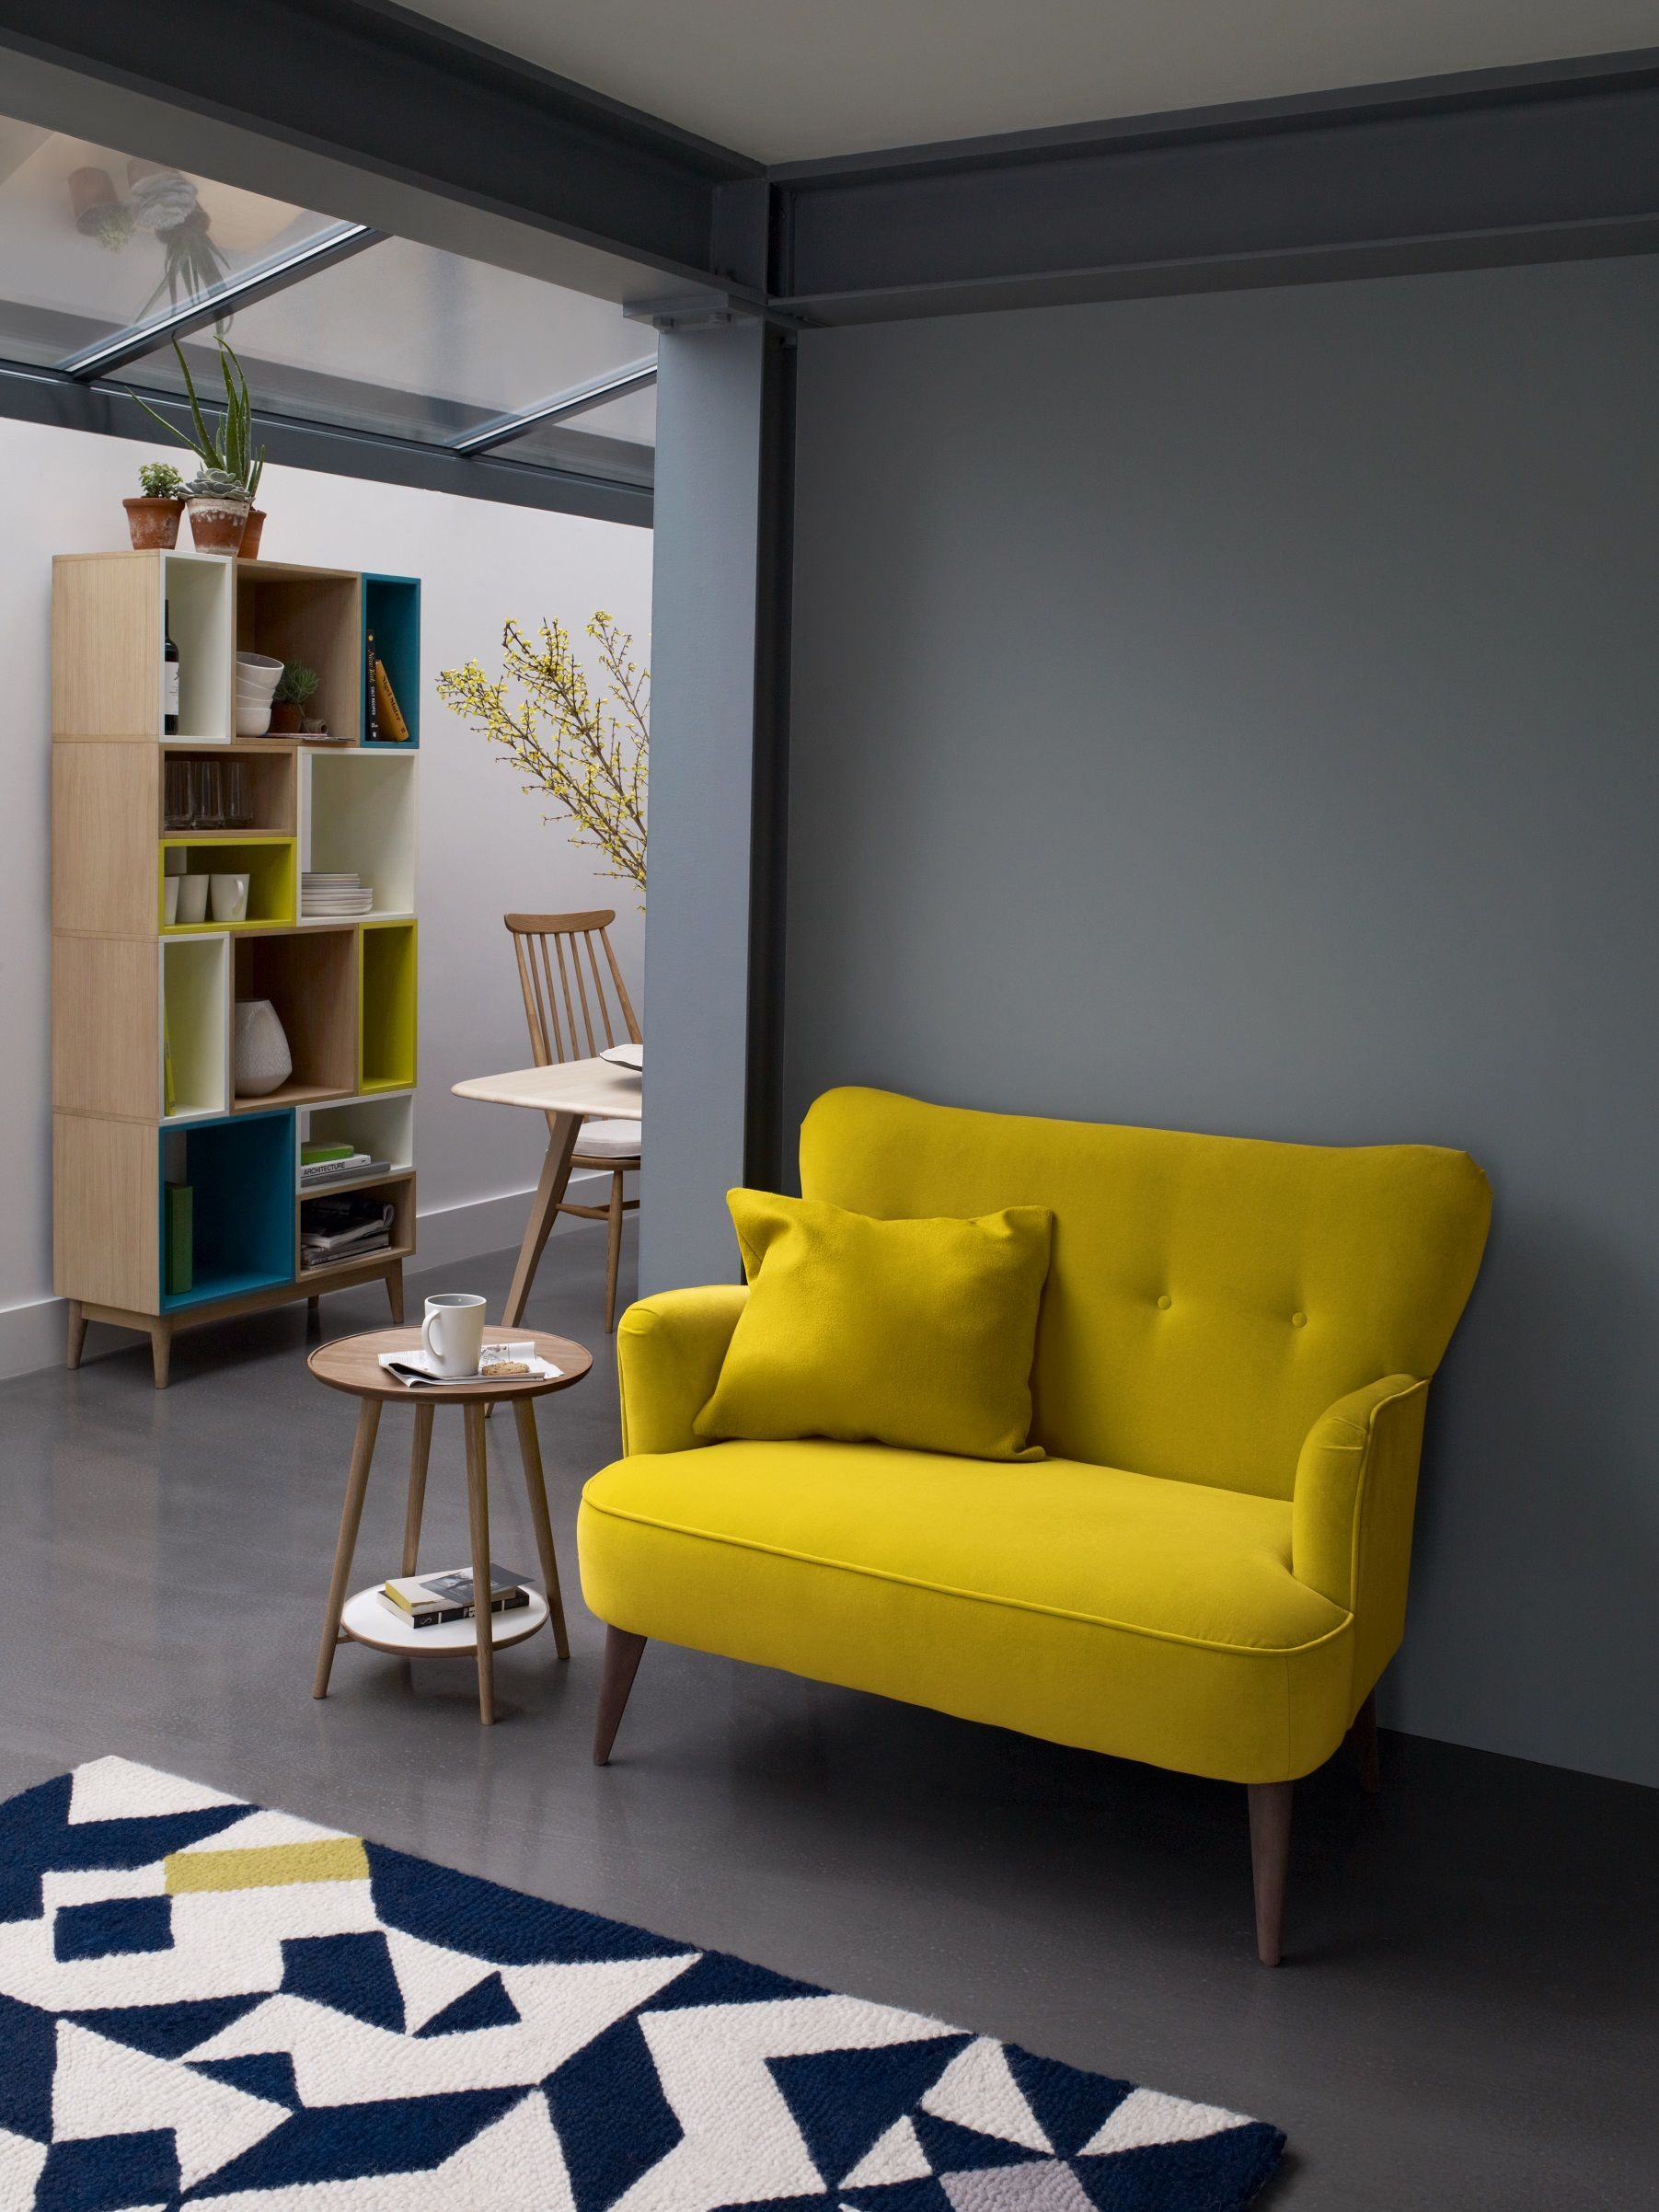 Bedroom Chair M&s Wenger Posture Key Pieces That Can Transform Any Room A Statement